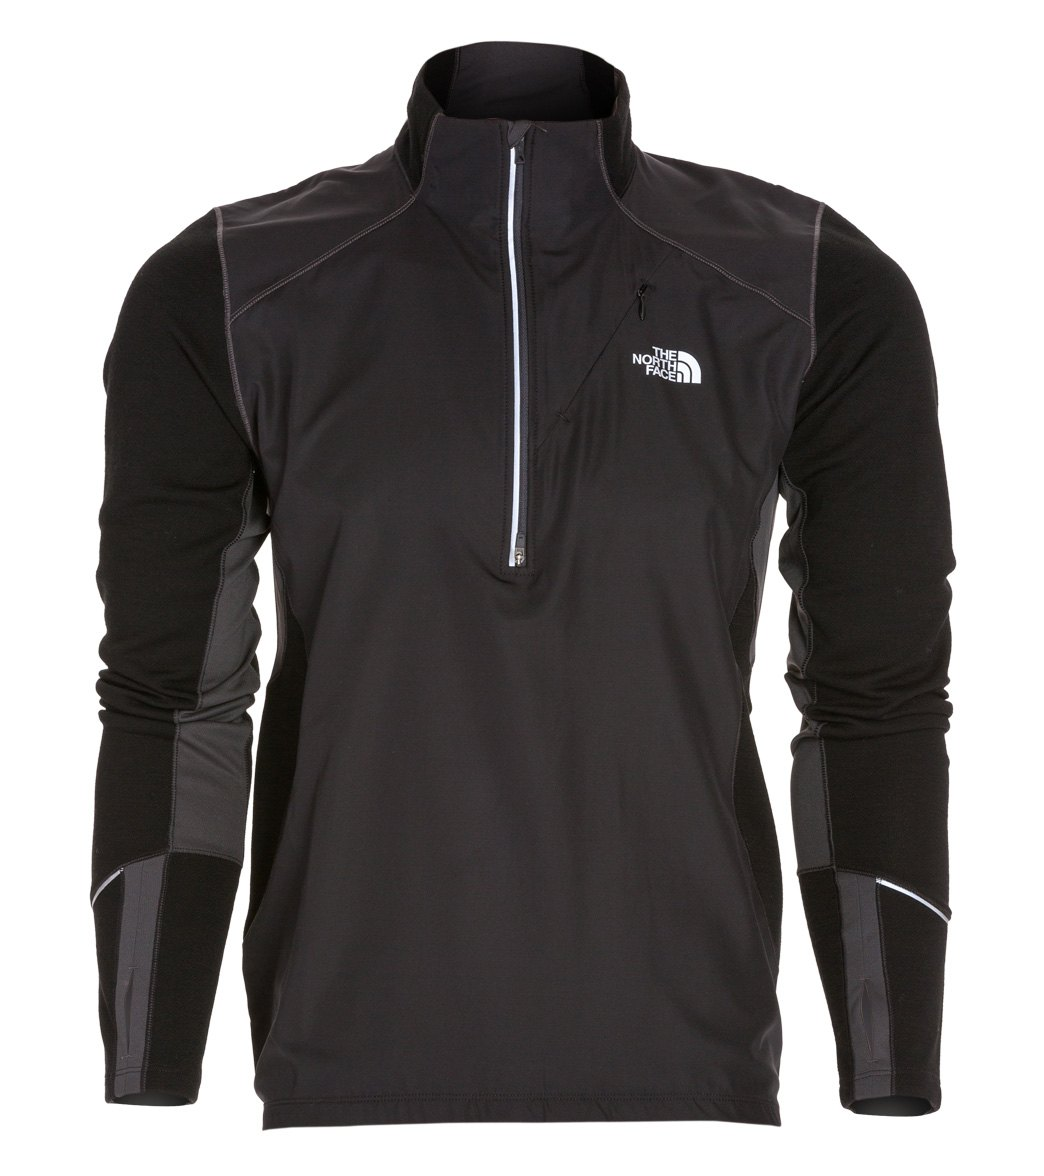 8d4ce1065ab3 The North Face Men s Isotherm 1 2 Zip Running Jacket at SwimOutlet.com -  Free Shipping